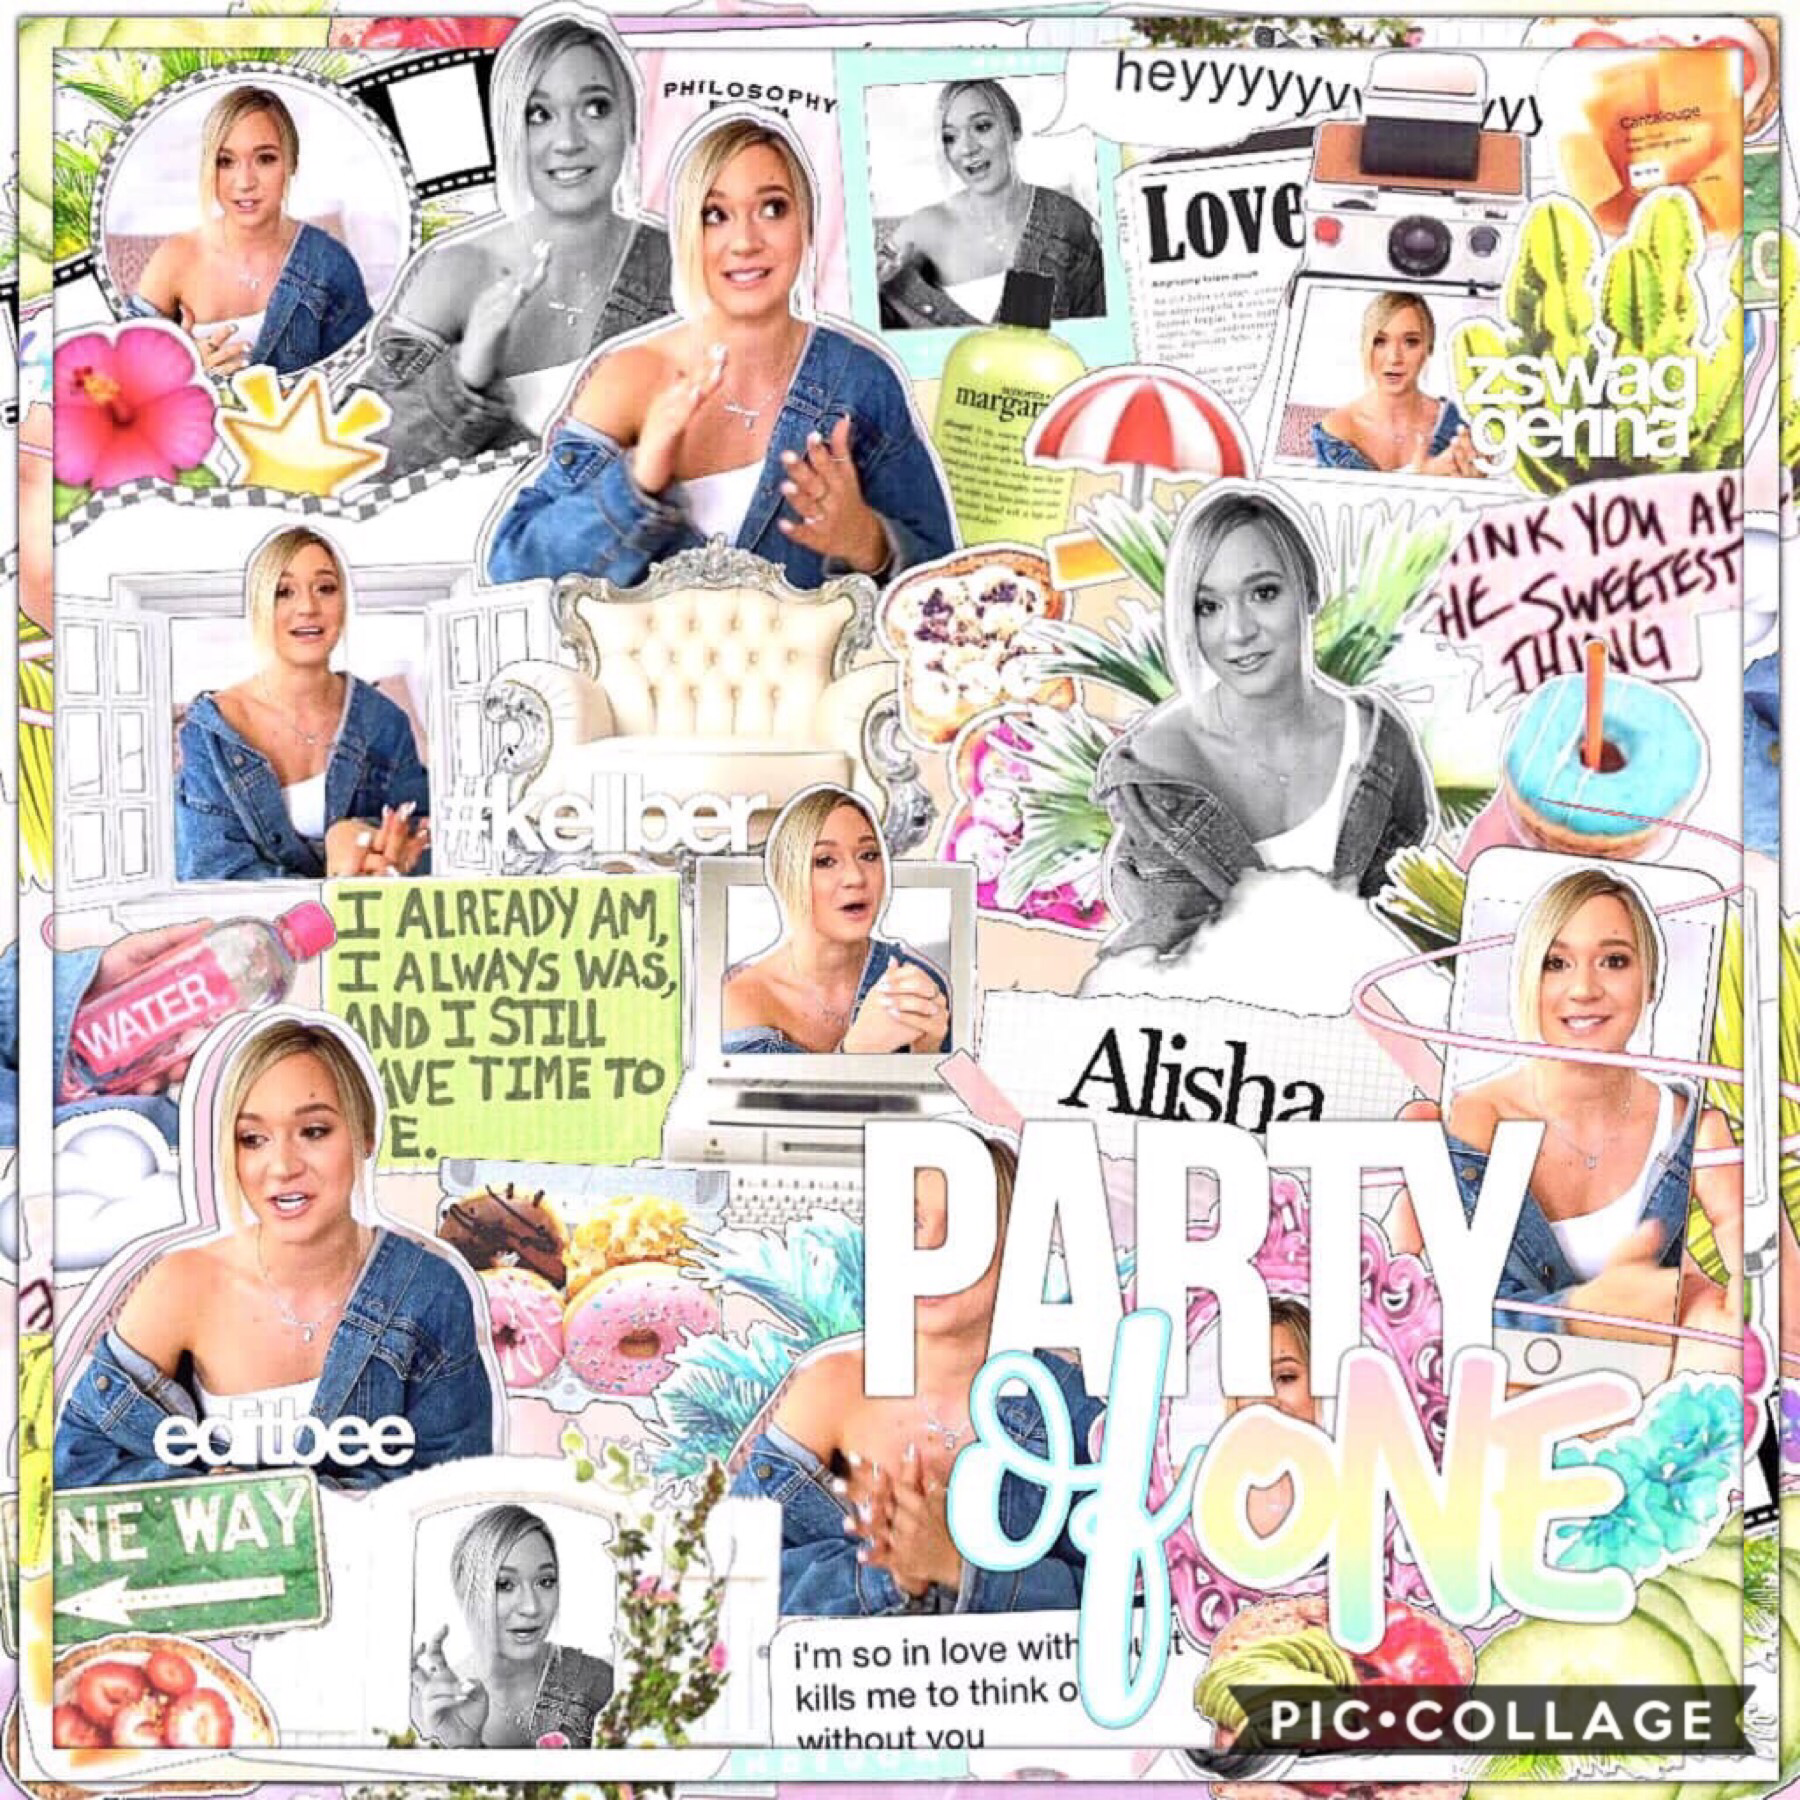 round two for #kellber 🥰🌴 this was actually the first and only collab that we were supposed to do (we ended up making 58239 of em lol) and I love it so much 💗💗 also follow my ridiculously talented best friend @editbee 😉